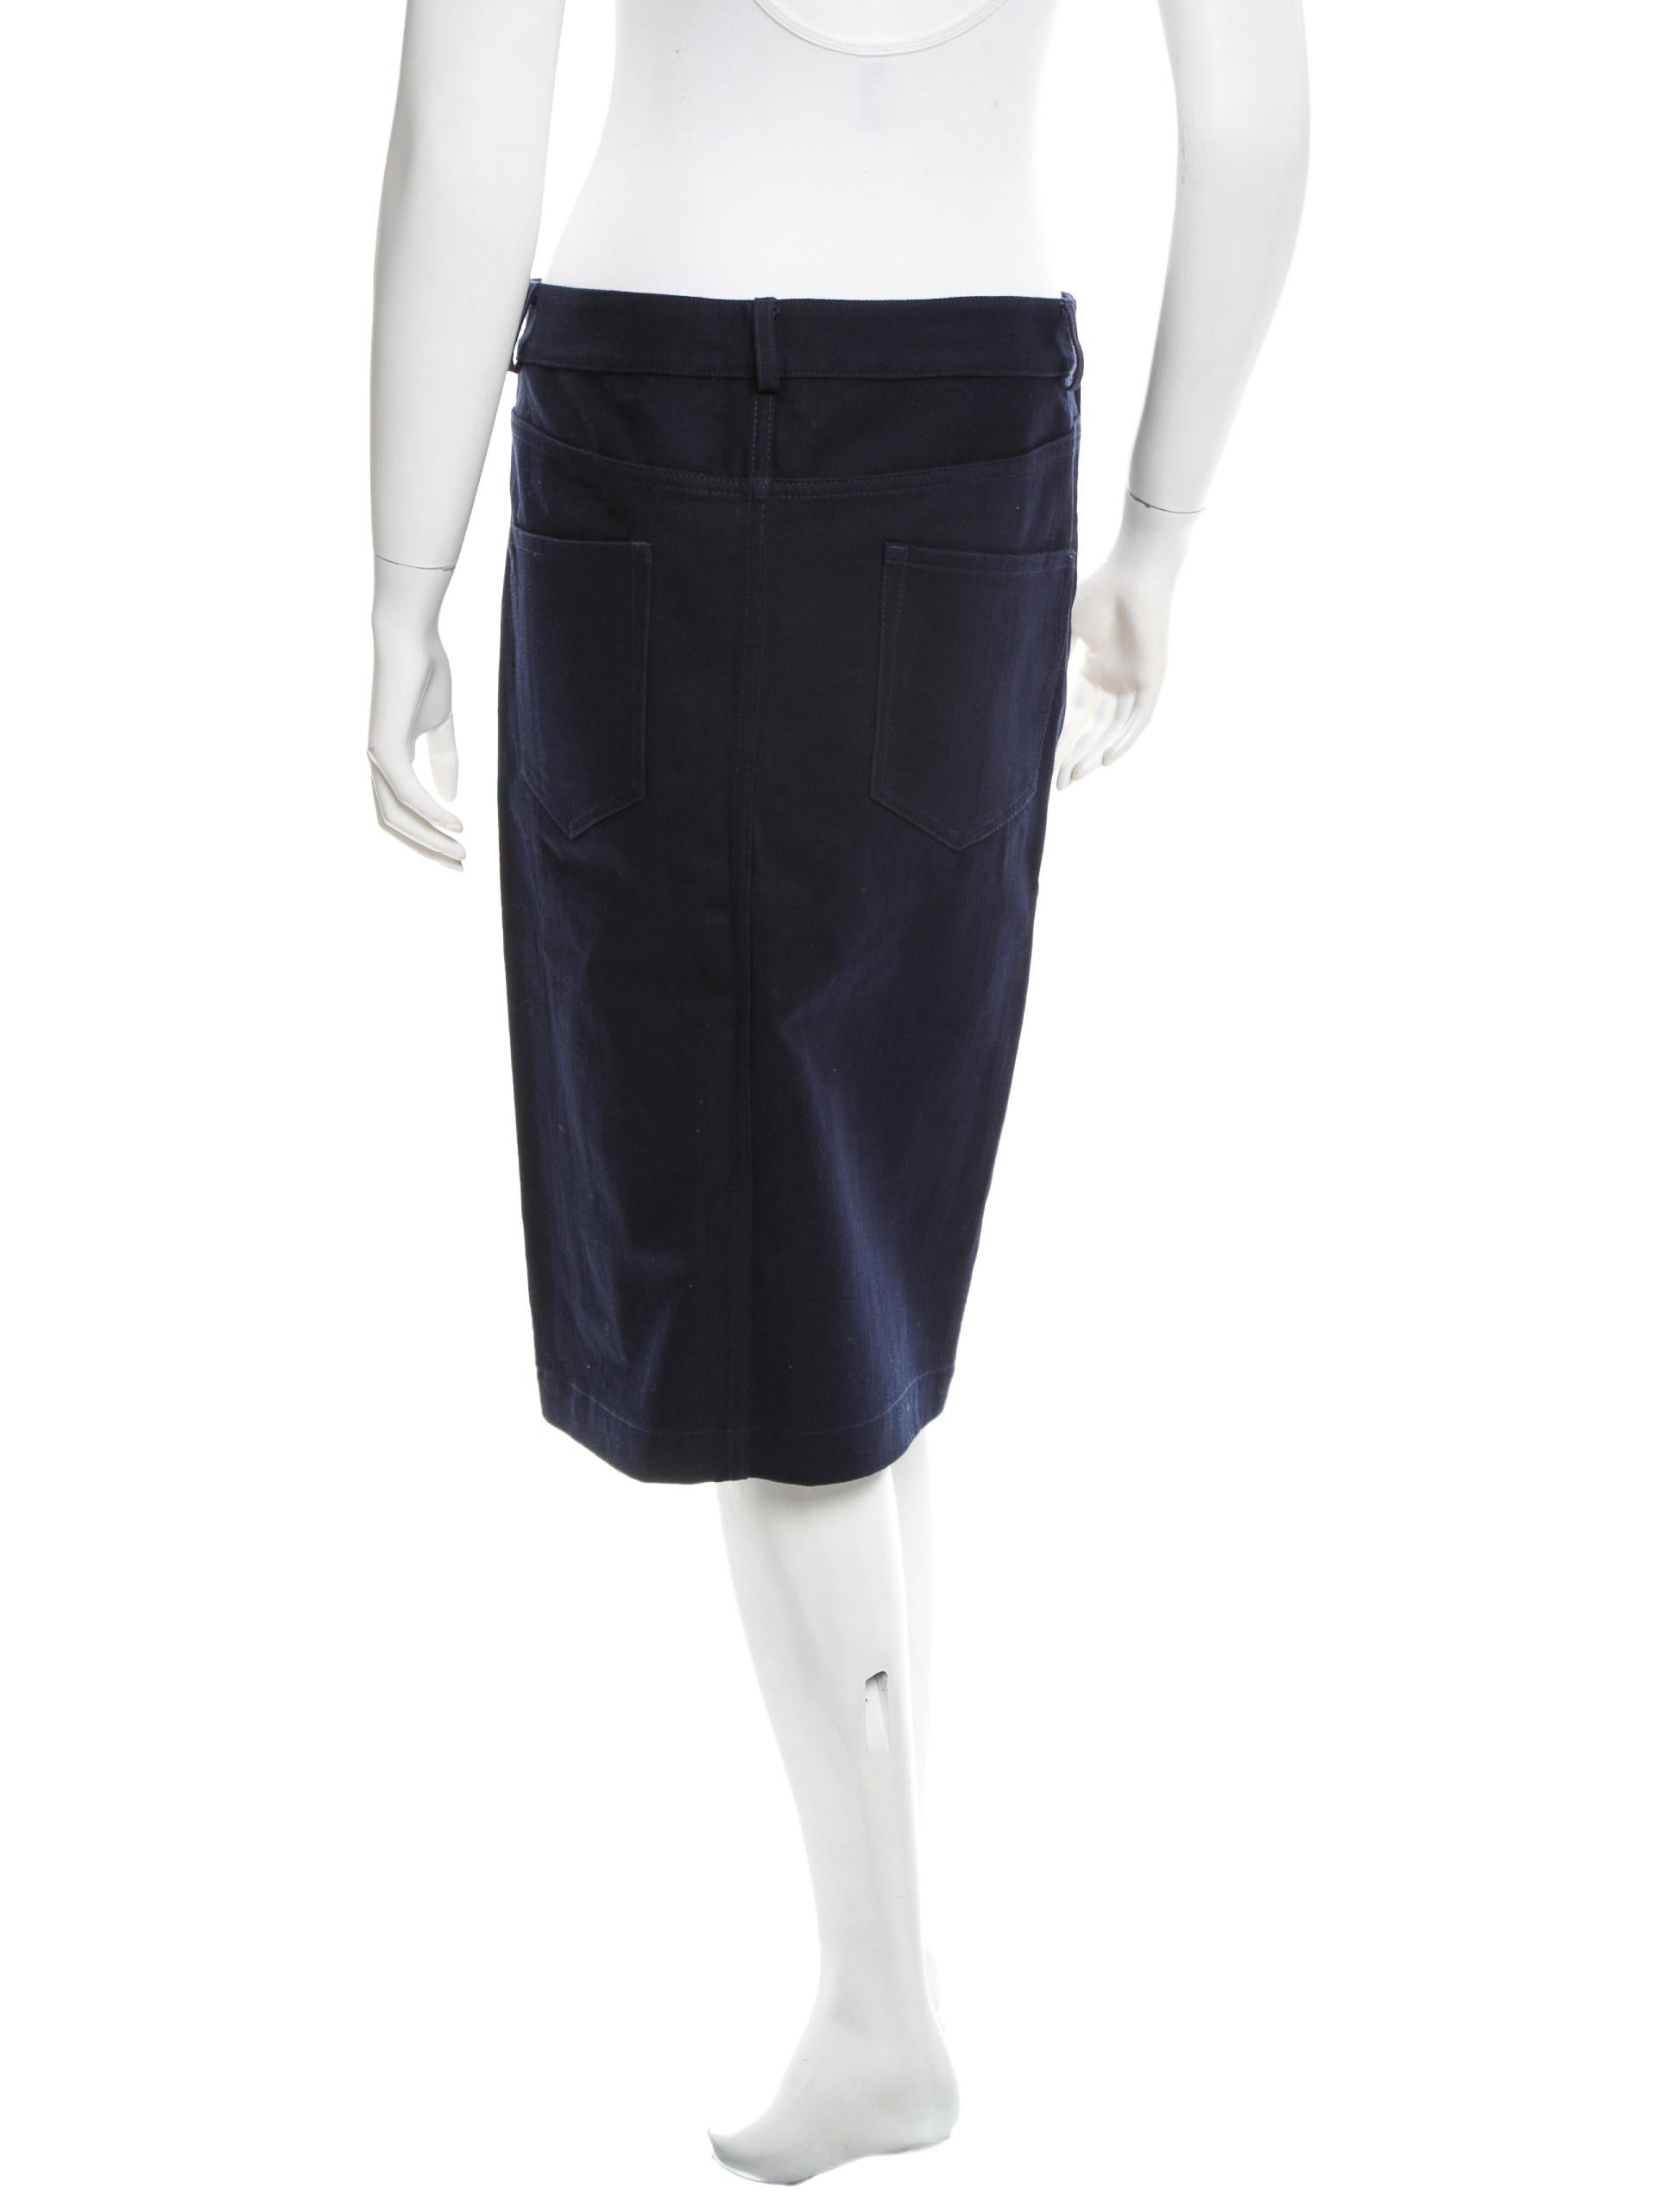 acne denim pencil skirt clothing acn23697 the realreal